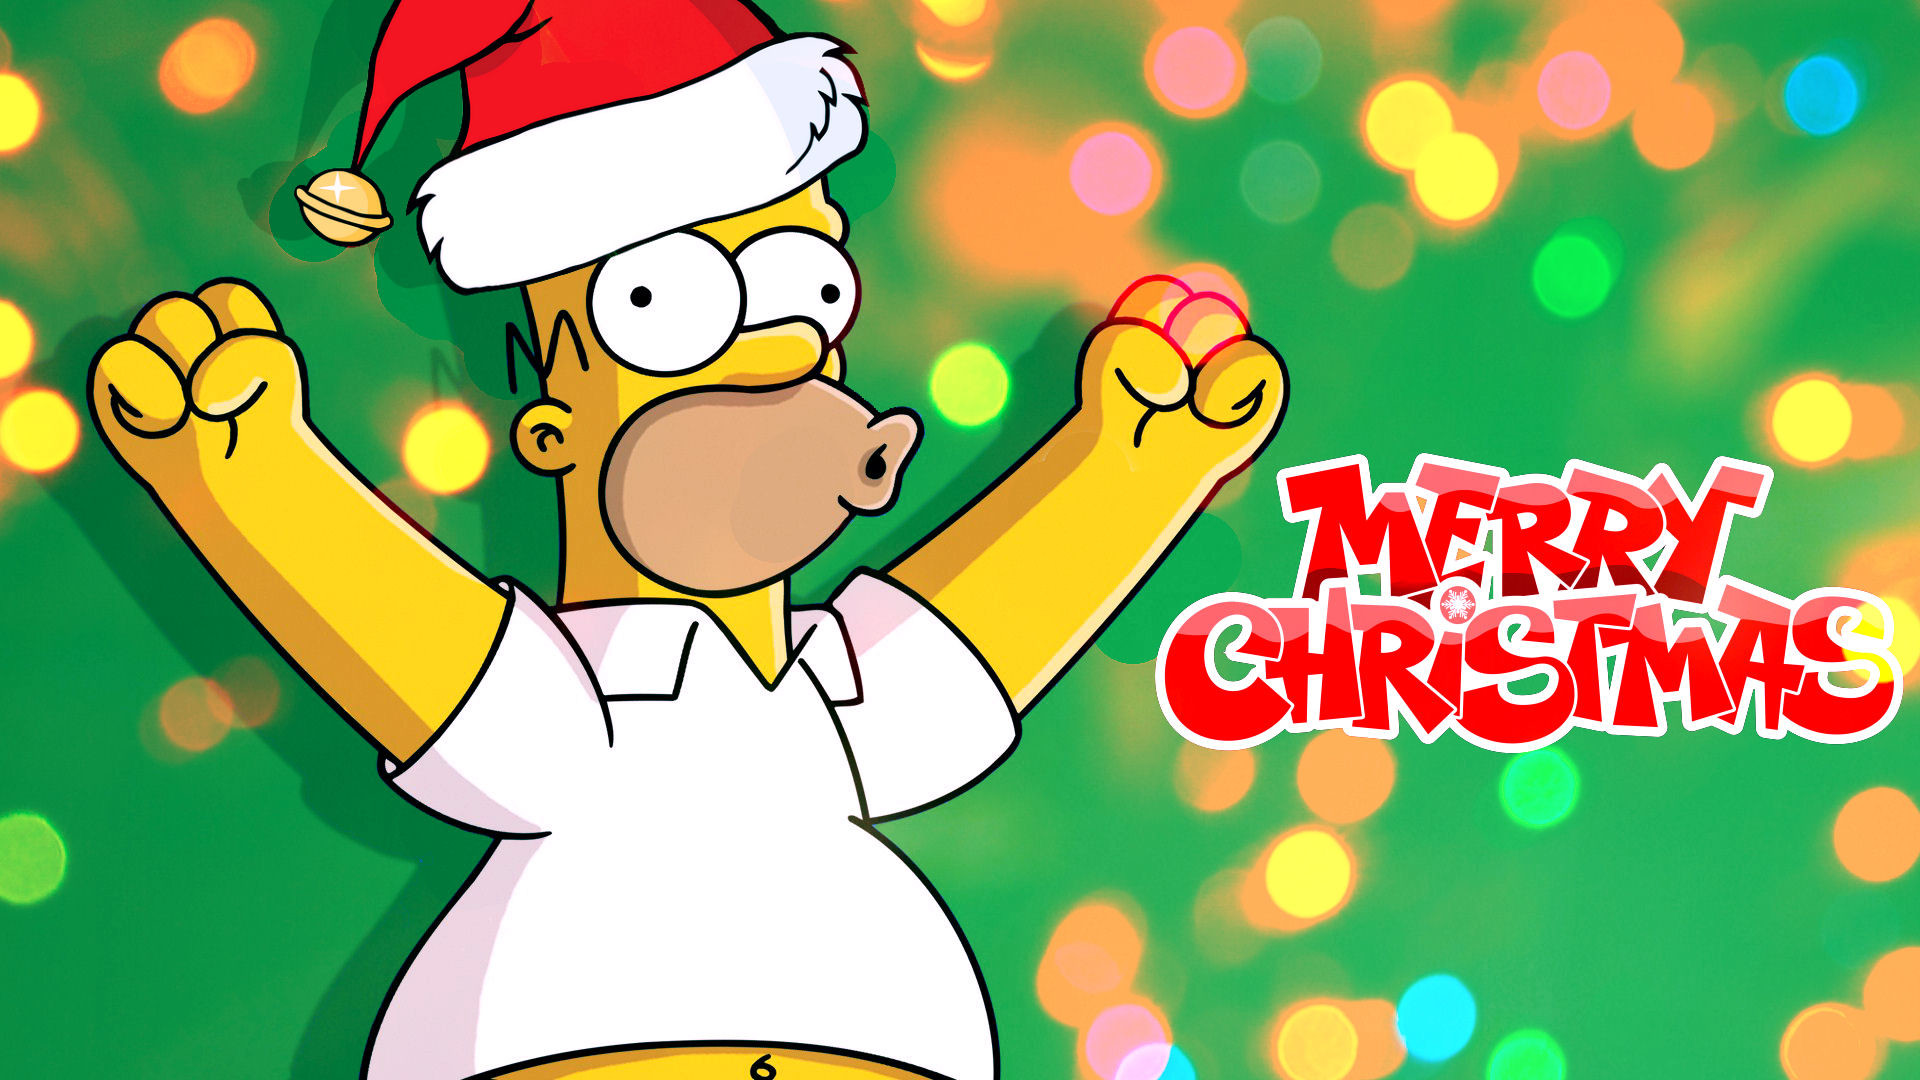 732276 vertical simpsons christmas wallpaper 1920x1080 for